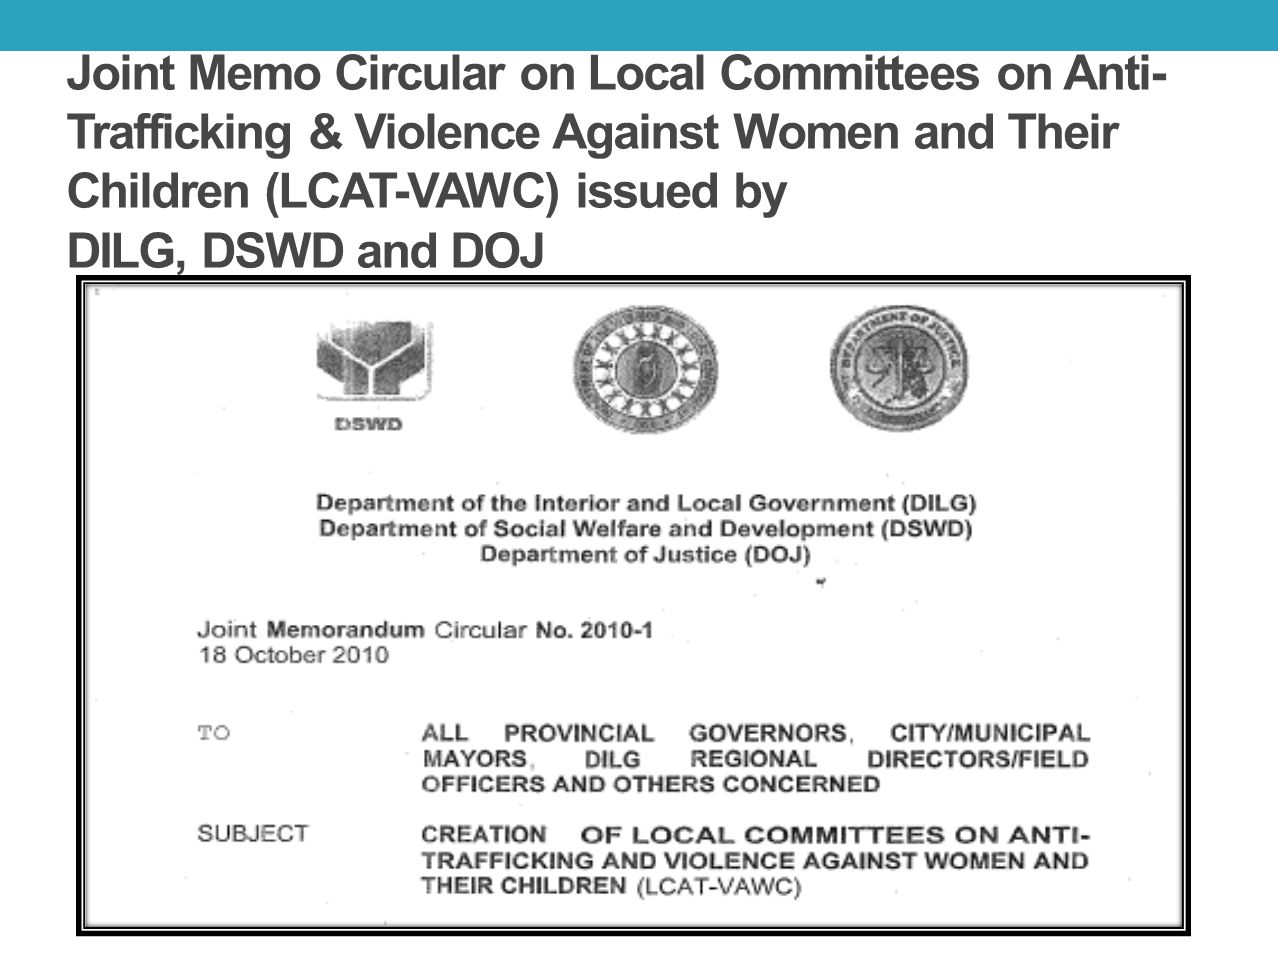 Joint Memo Circular on Local Committees on Anti-Trafficking & Violence Against Women and Their Children (LCAT-VAWC) issued by DILG, DSWD and DOJ